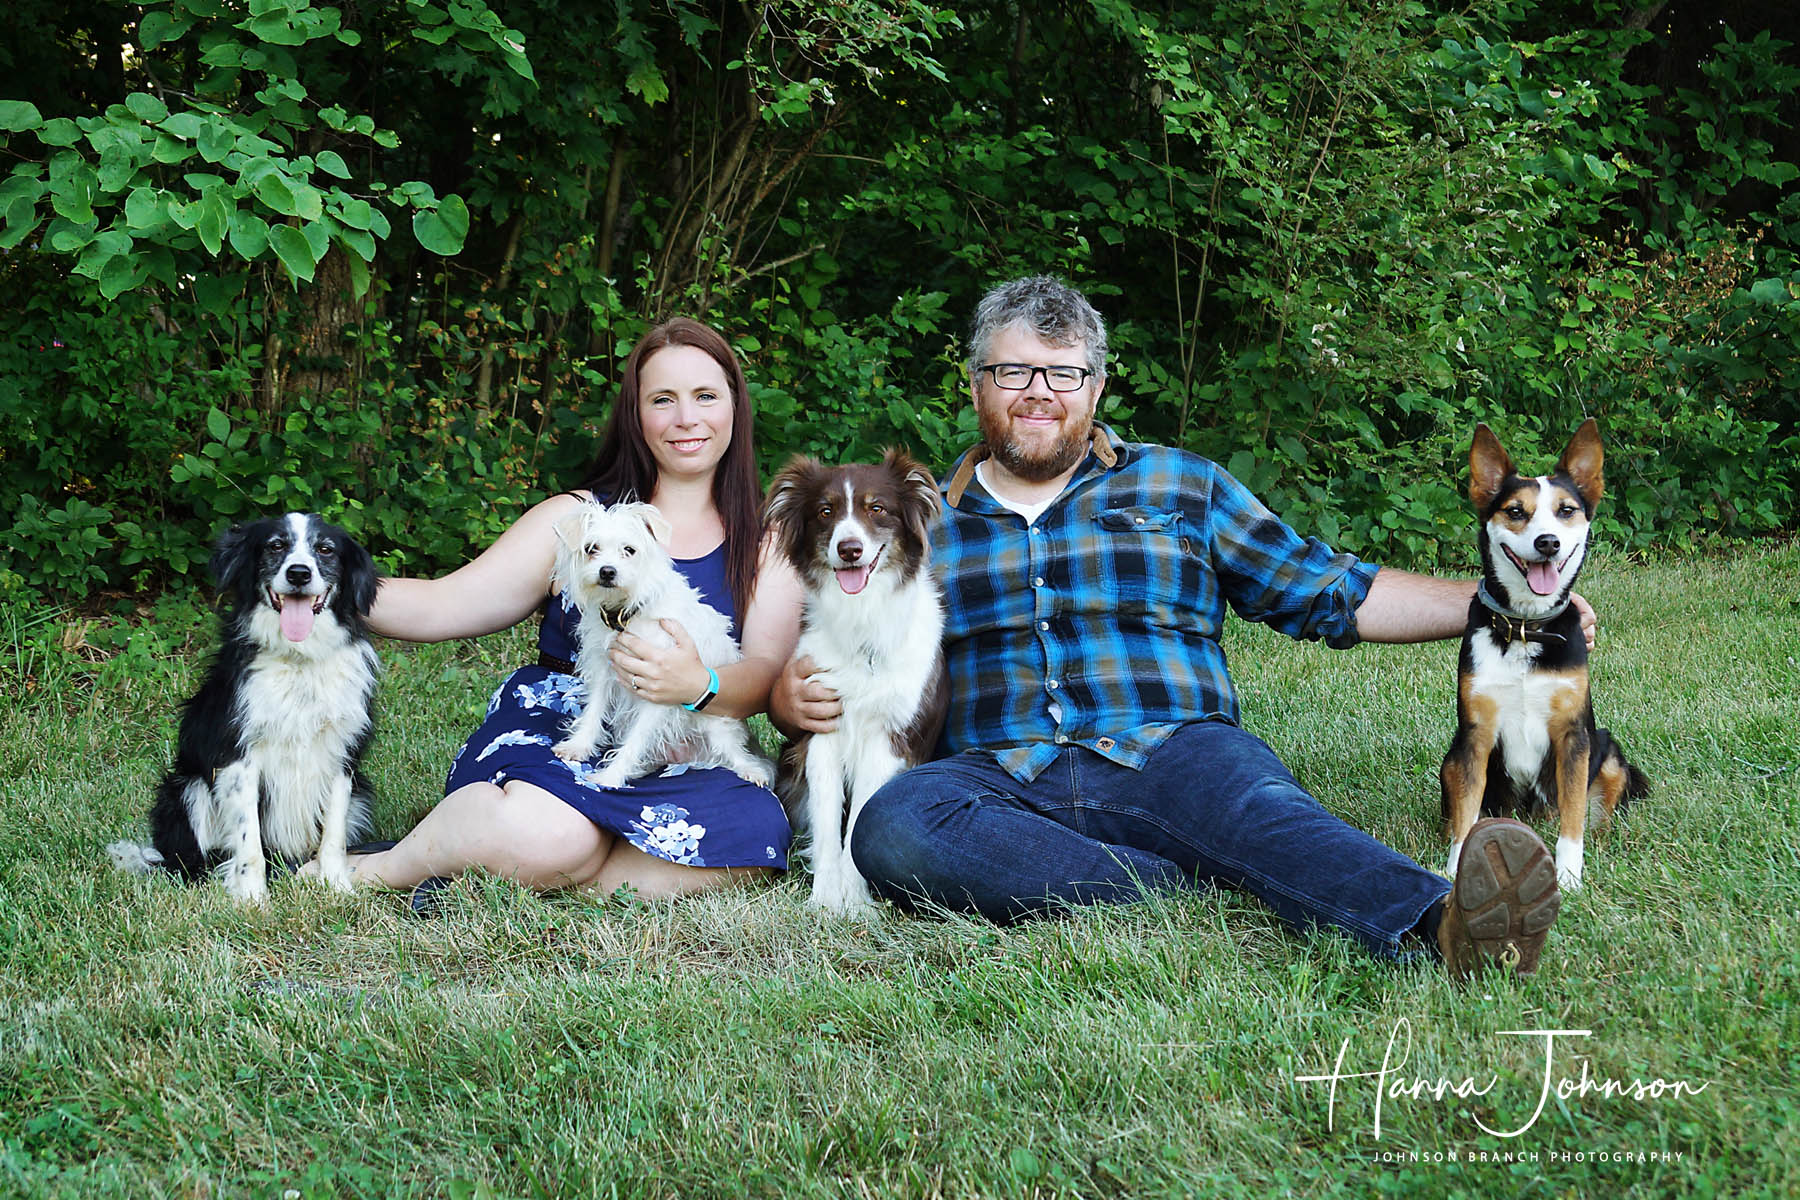 Engagement photo with dogs on farm in Cynthiana, Kentucky